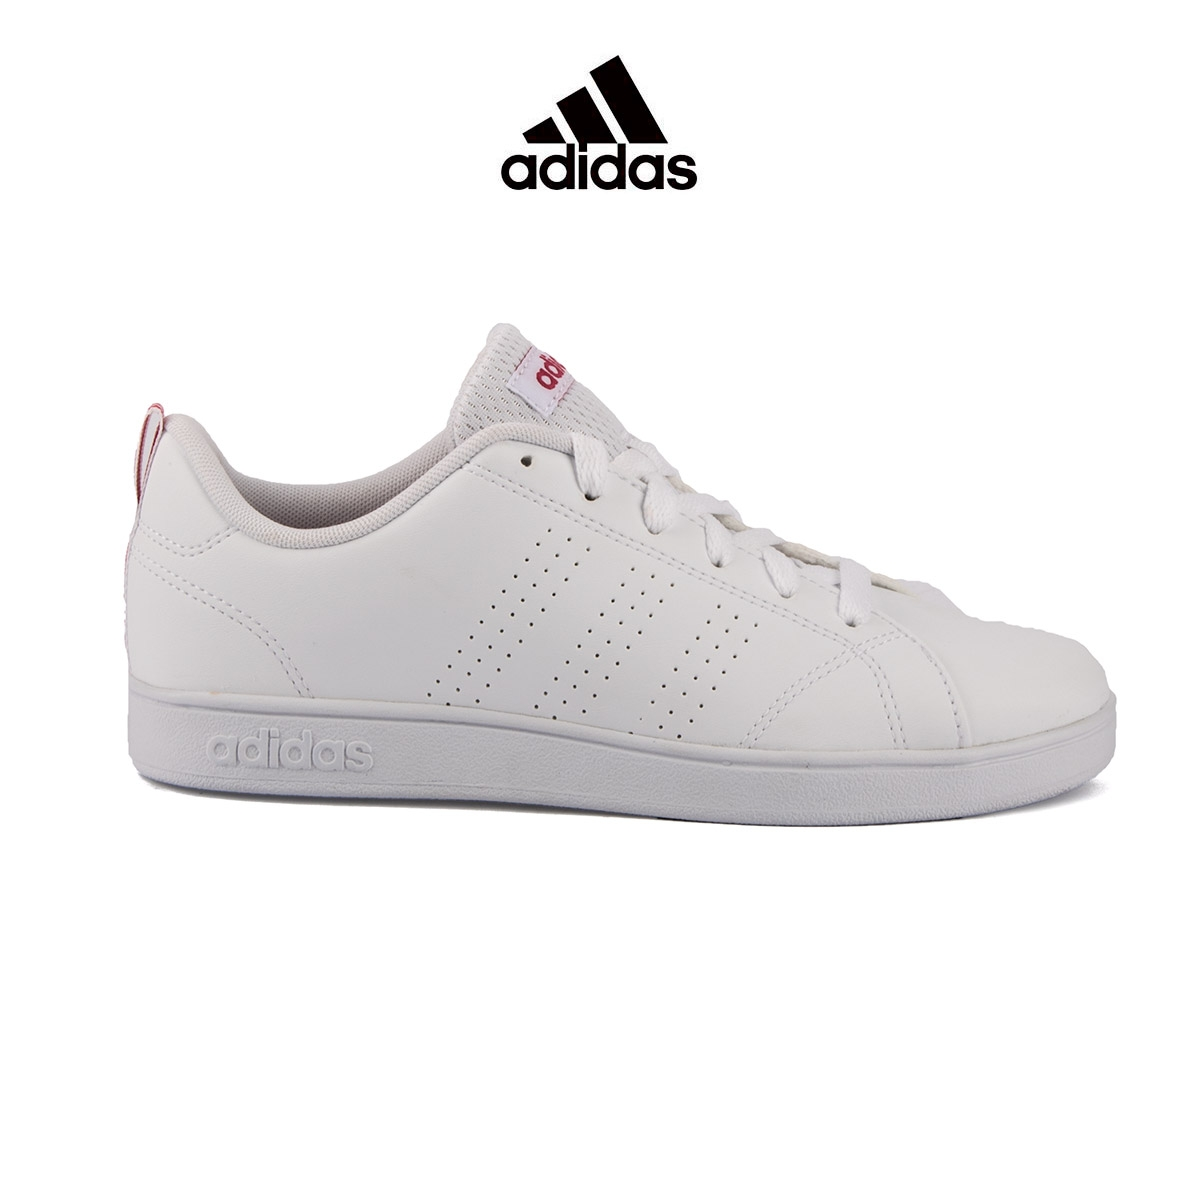 ADIDAS Neo VS Advantage CL K Pink White Rosa Blanco Mujer